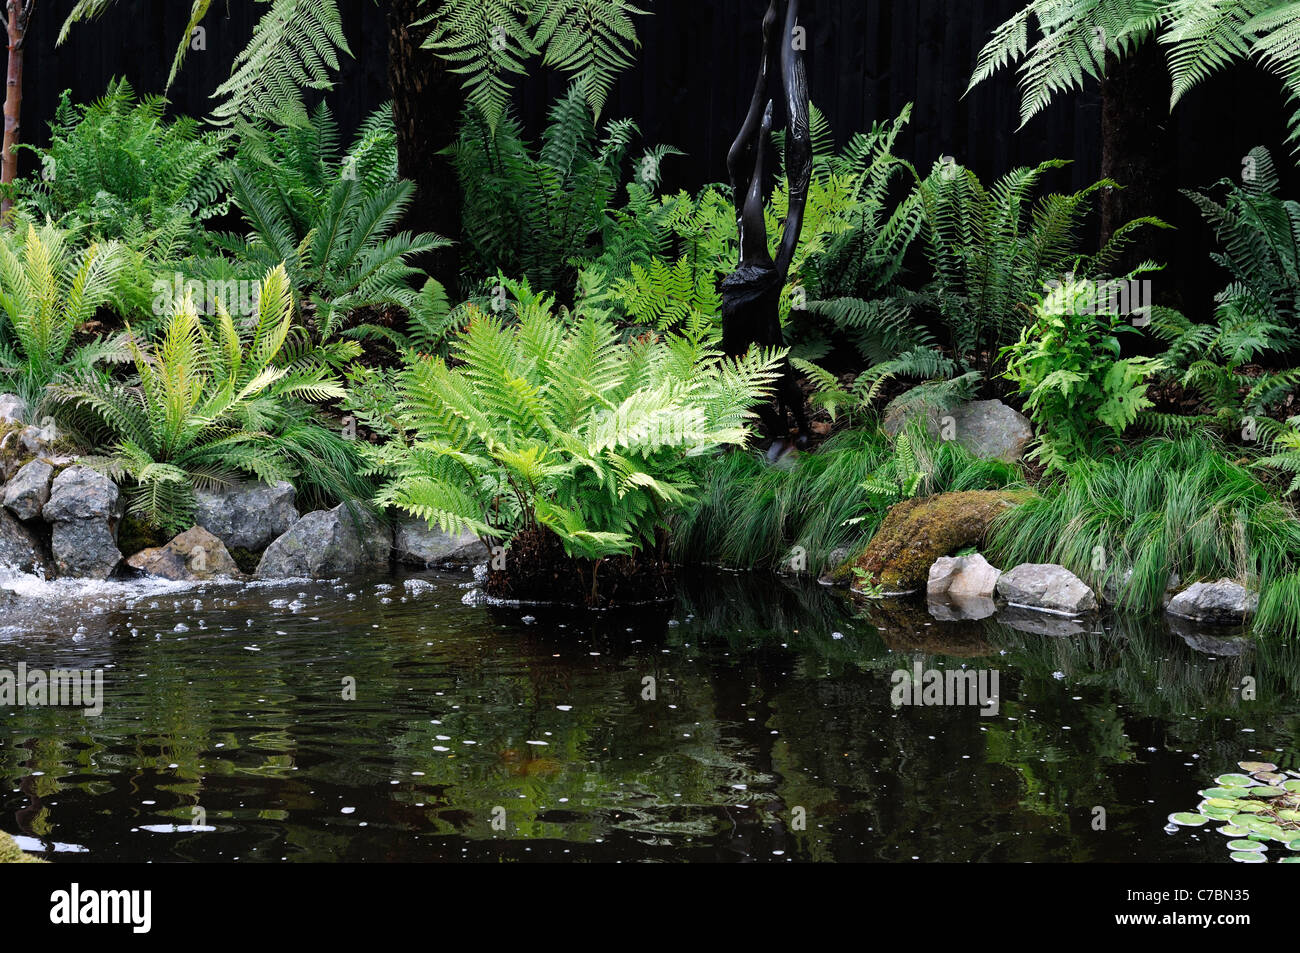 Fern Garden Mixed Shade Shady Loving Plants Beside Water Pool Pond Wet  Boggy Soil Tranquil Quite